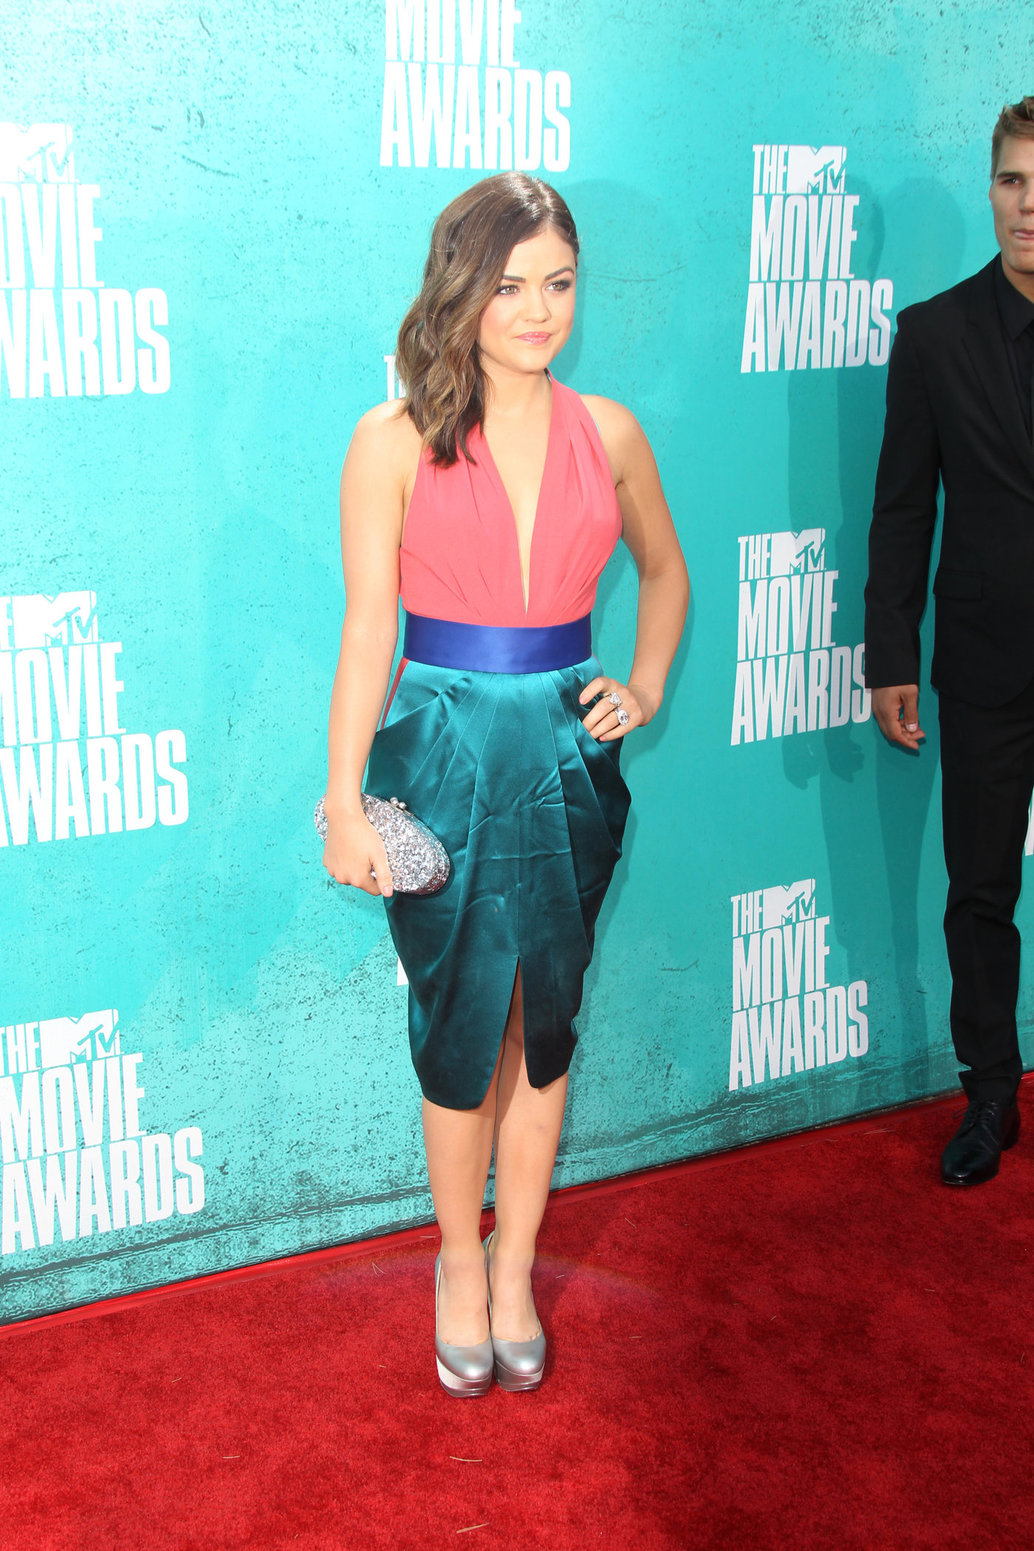 Lucy Hale - 2012 MTV Movie Awards (Arrival) in Universal City (June 3, 2012)